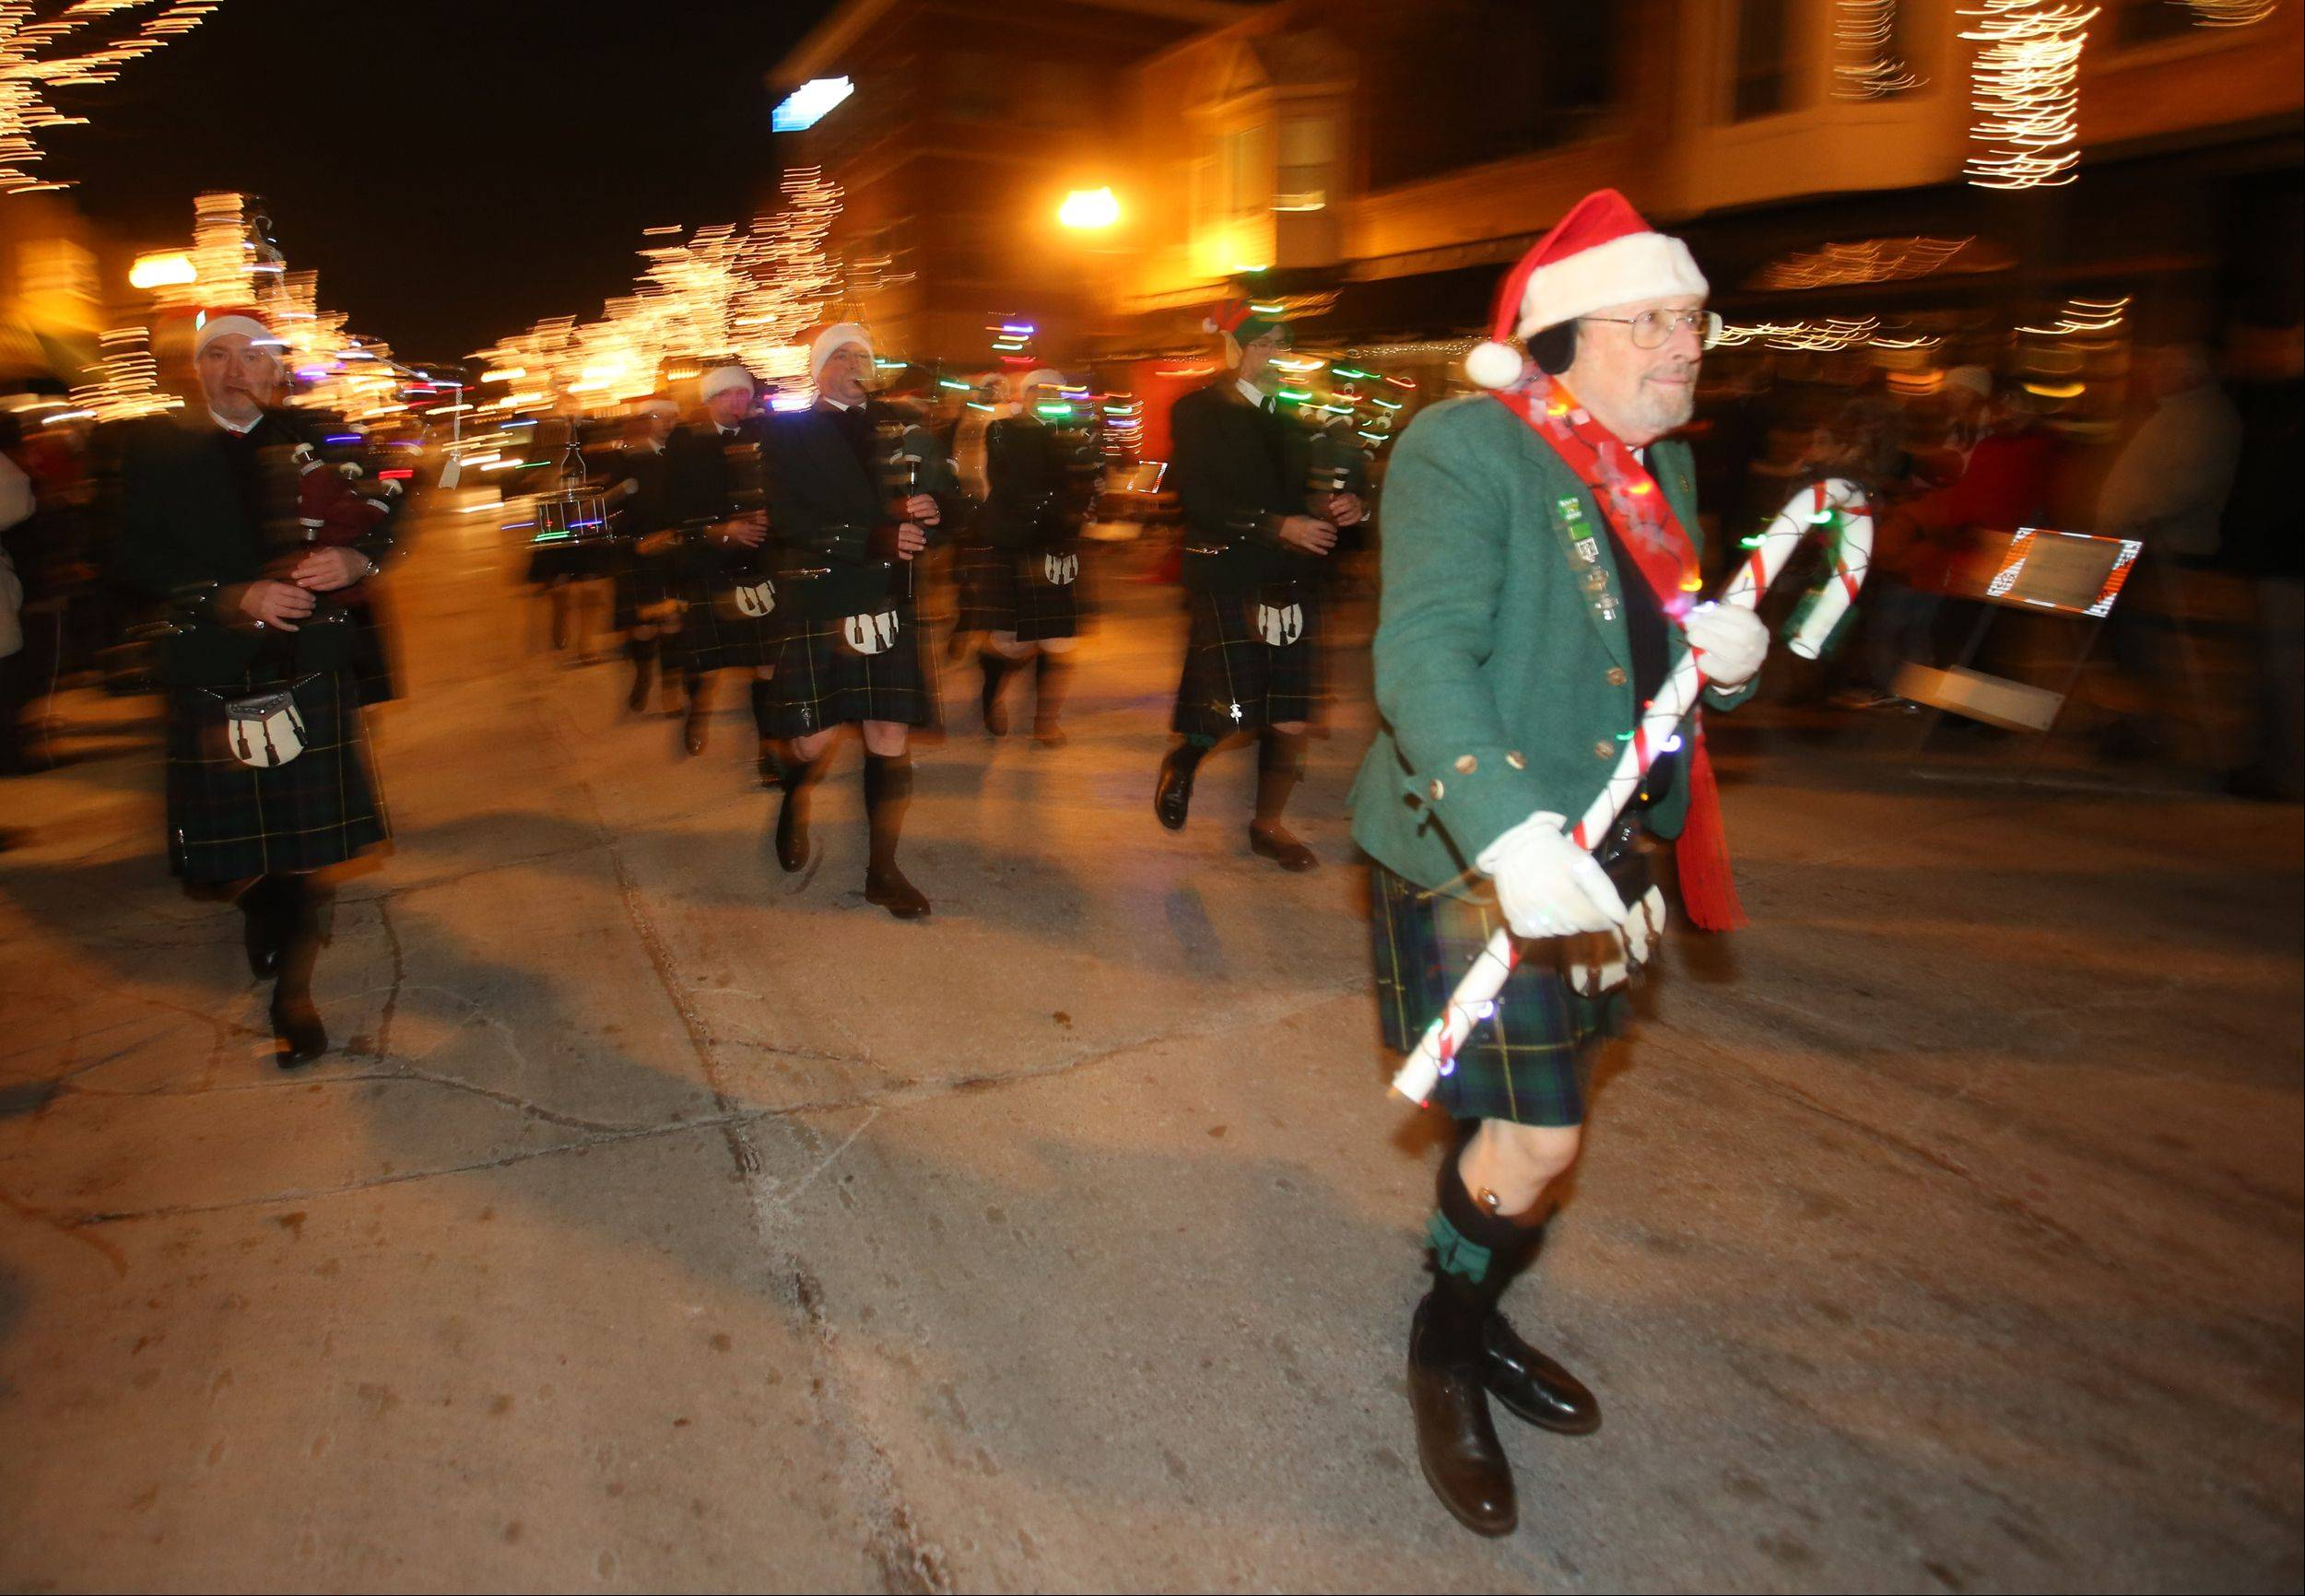 Craig McCould leads the Tunes of Glory during the Wheaton Lighted Holiday Parade on Friday.